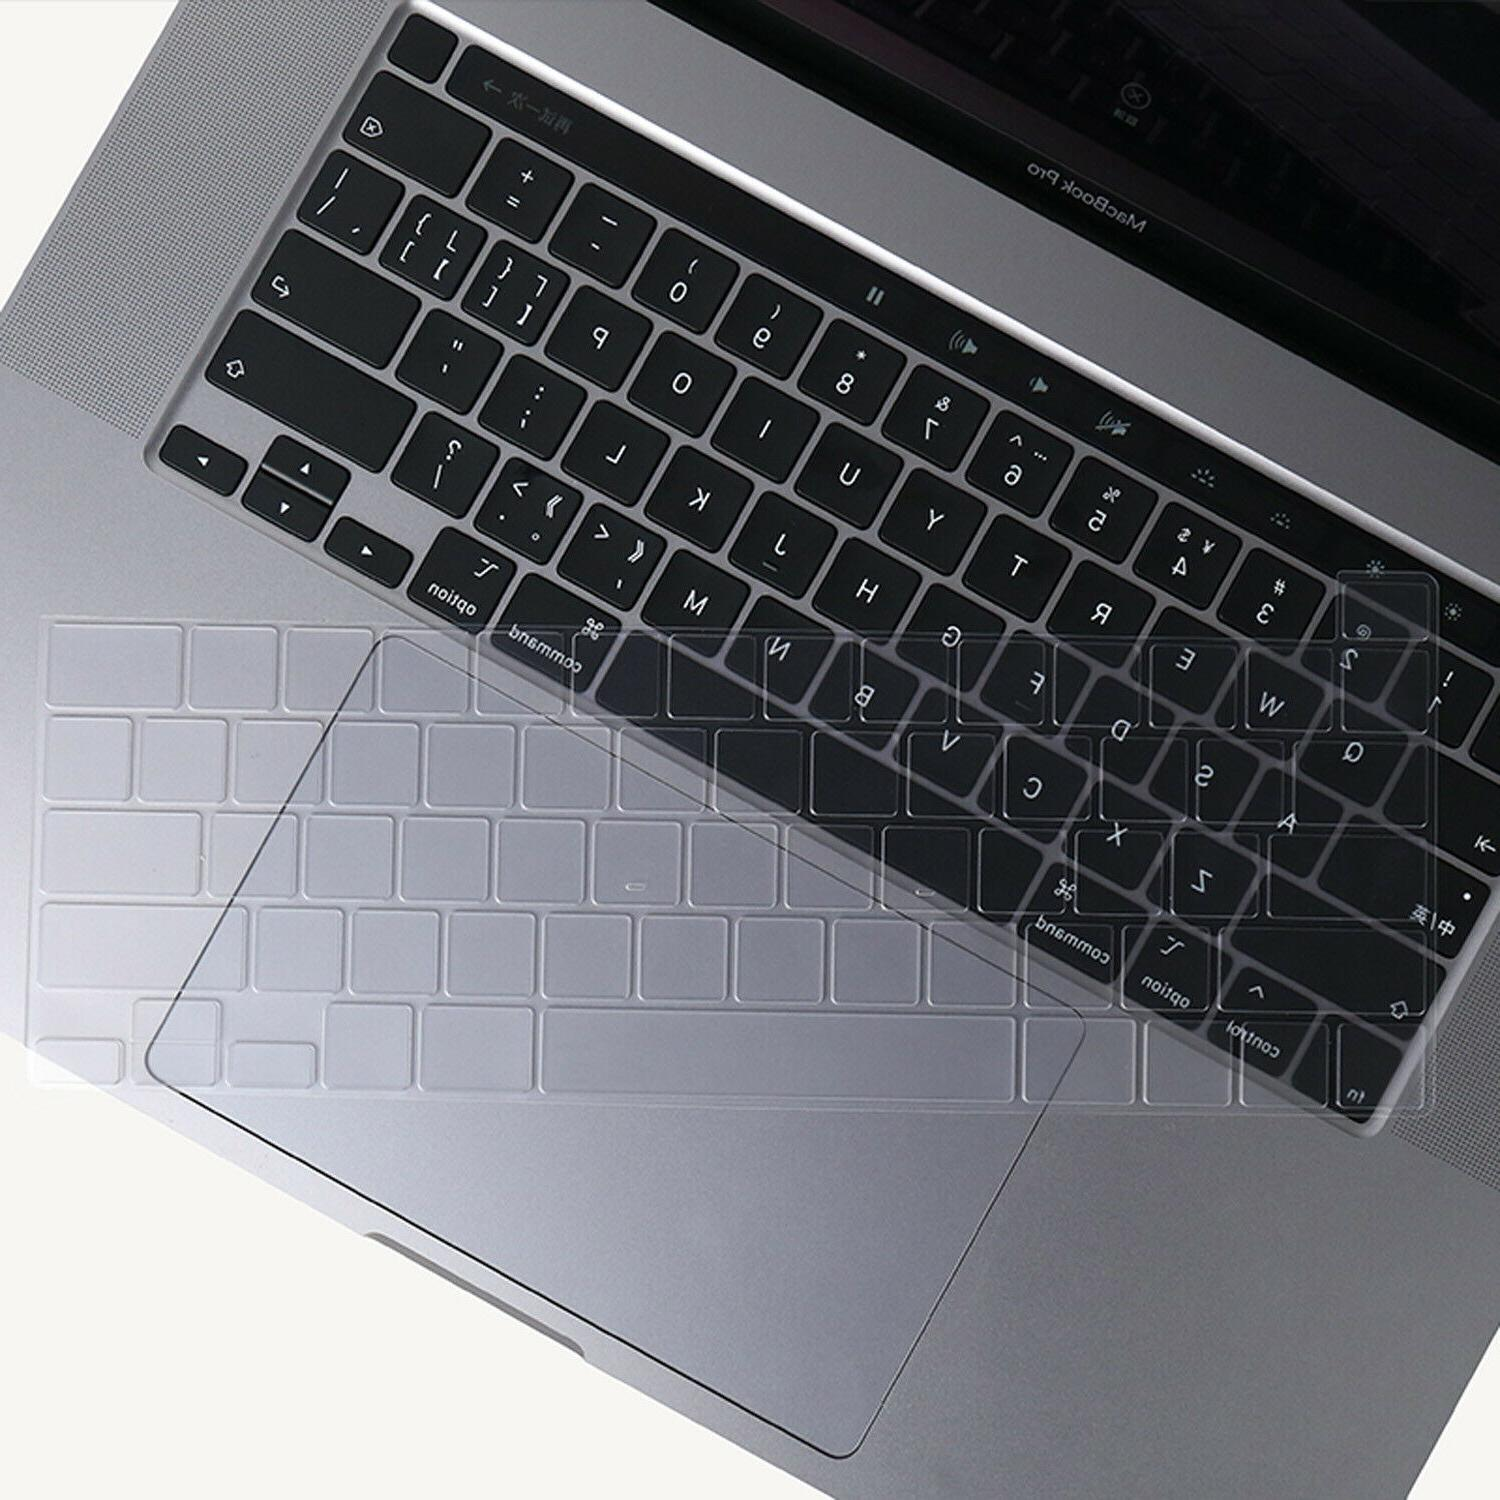 XSKN Ultra TPU Keyboard Cover for New Macbook Pro A2141